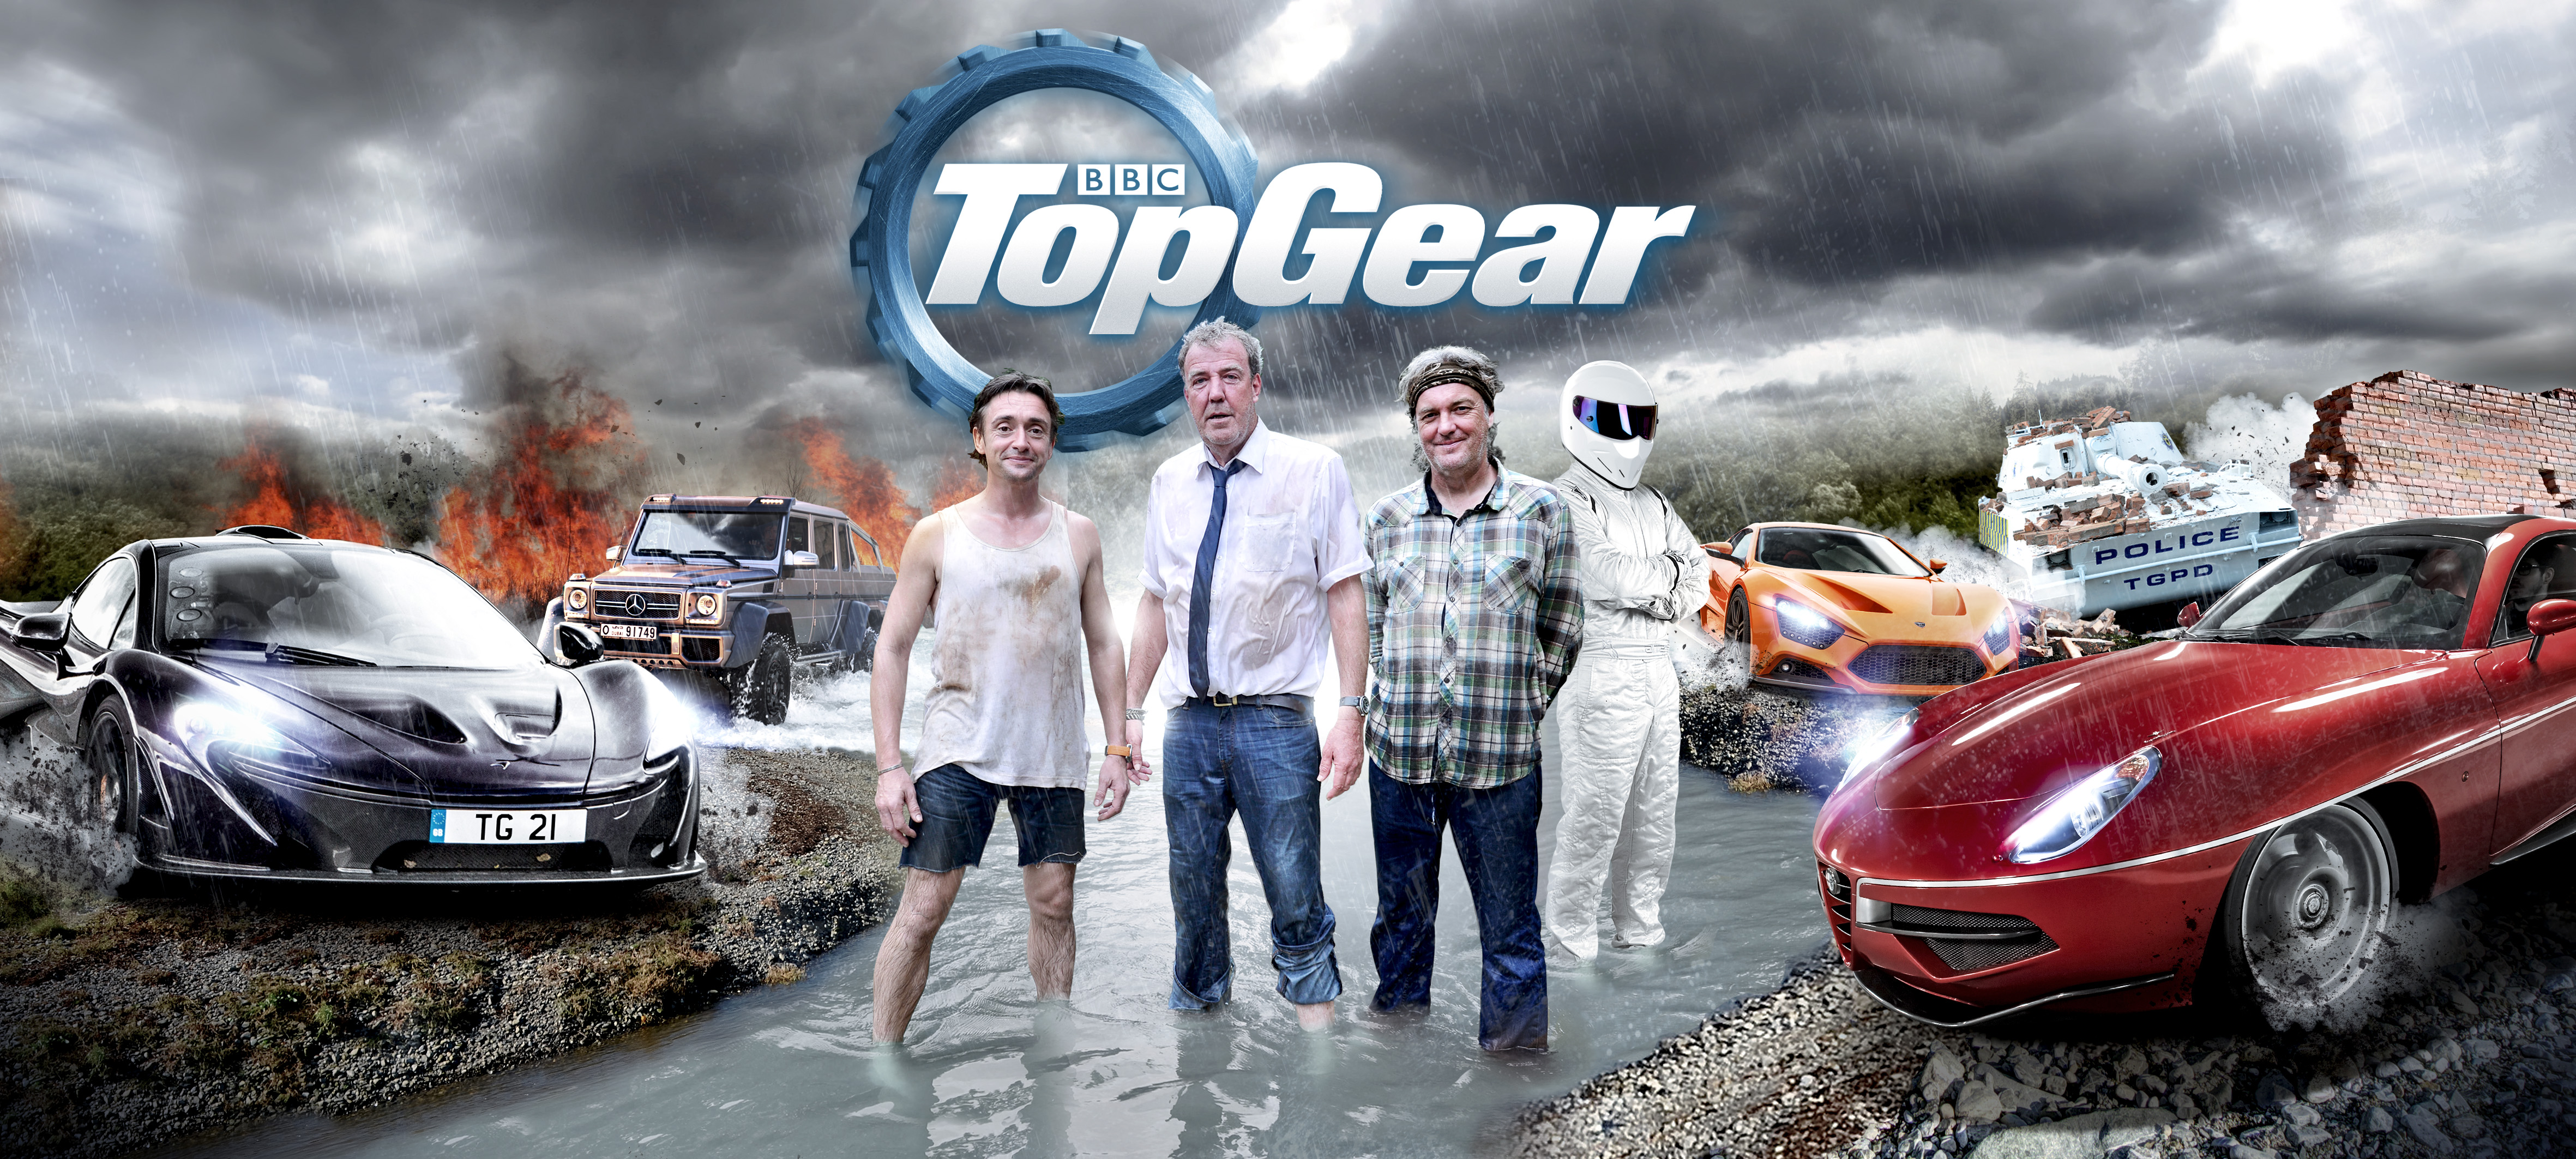 Top Gear Series 21 Set To Premiere In America On February 10